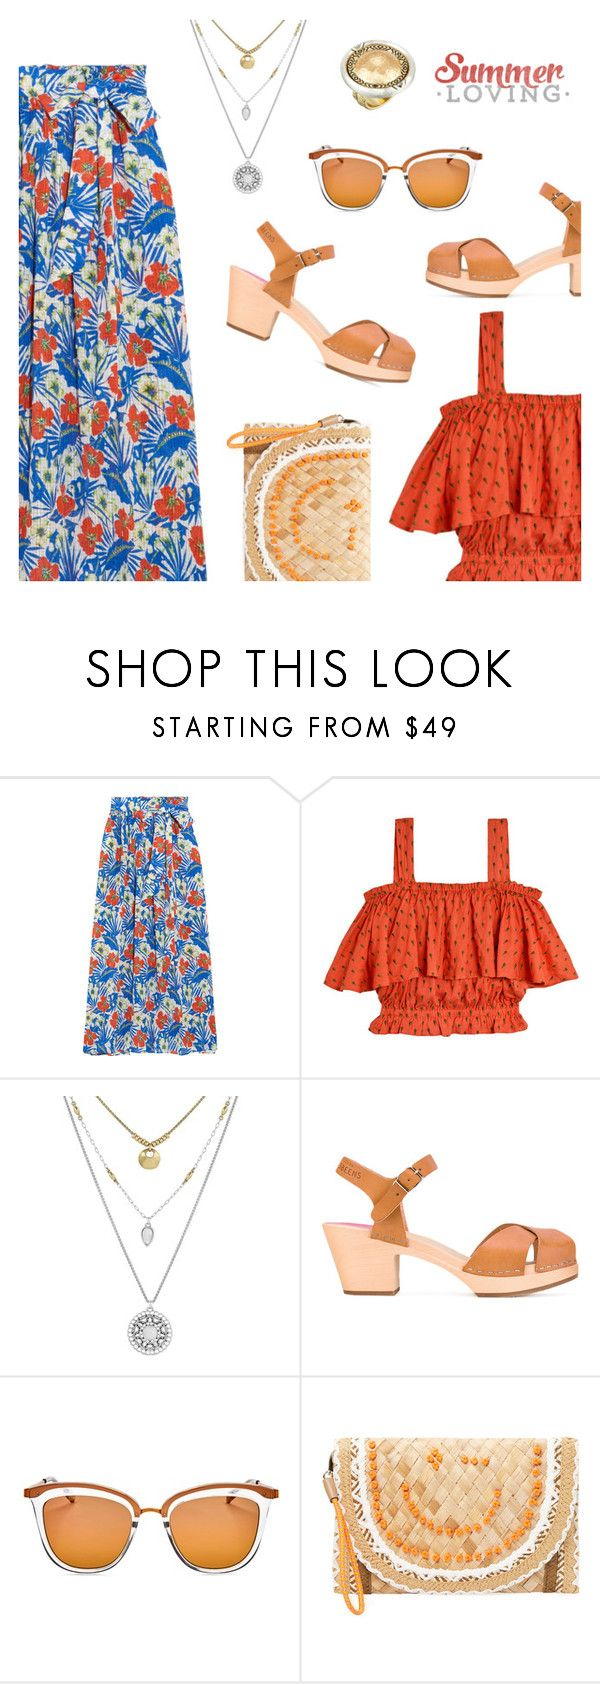 """Summer Look"" by dressedbyrose ❤ liked on Polyvore featuring Etro, Samantha Pleet, Lucky Brand, Swedish Hasbeens, Le Specs, Anya Hindmarch, House of Harlow 1960, Summer and polyvoreeditorial"